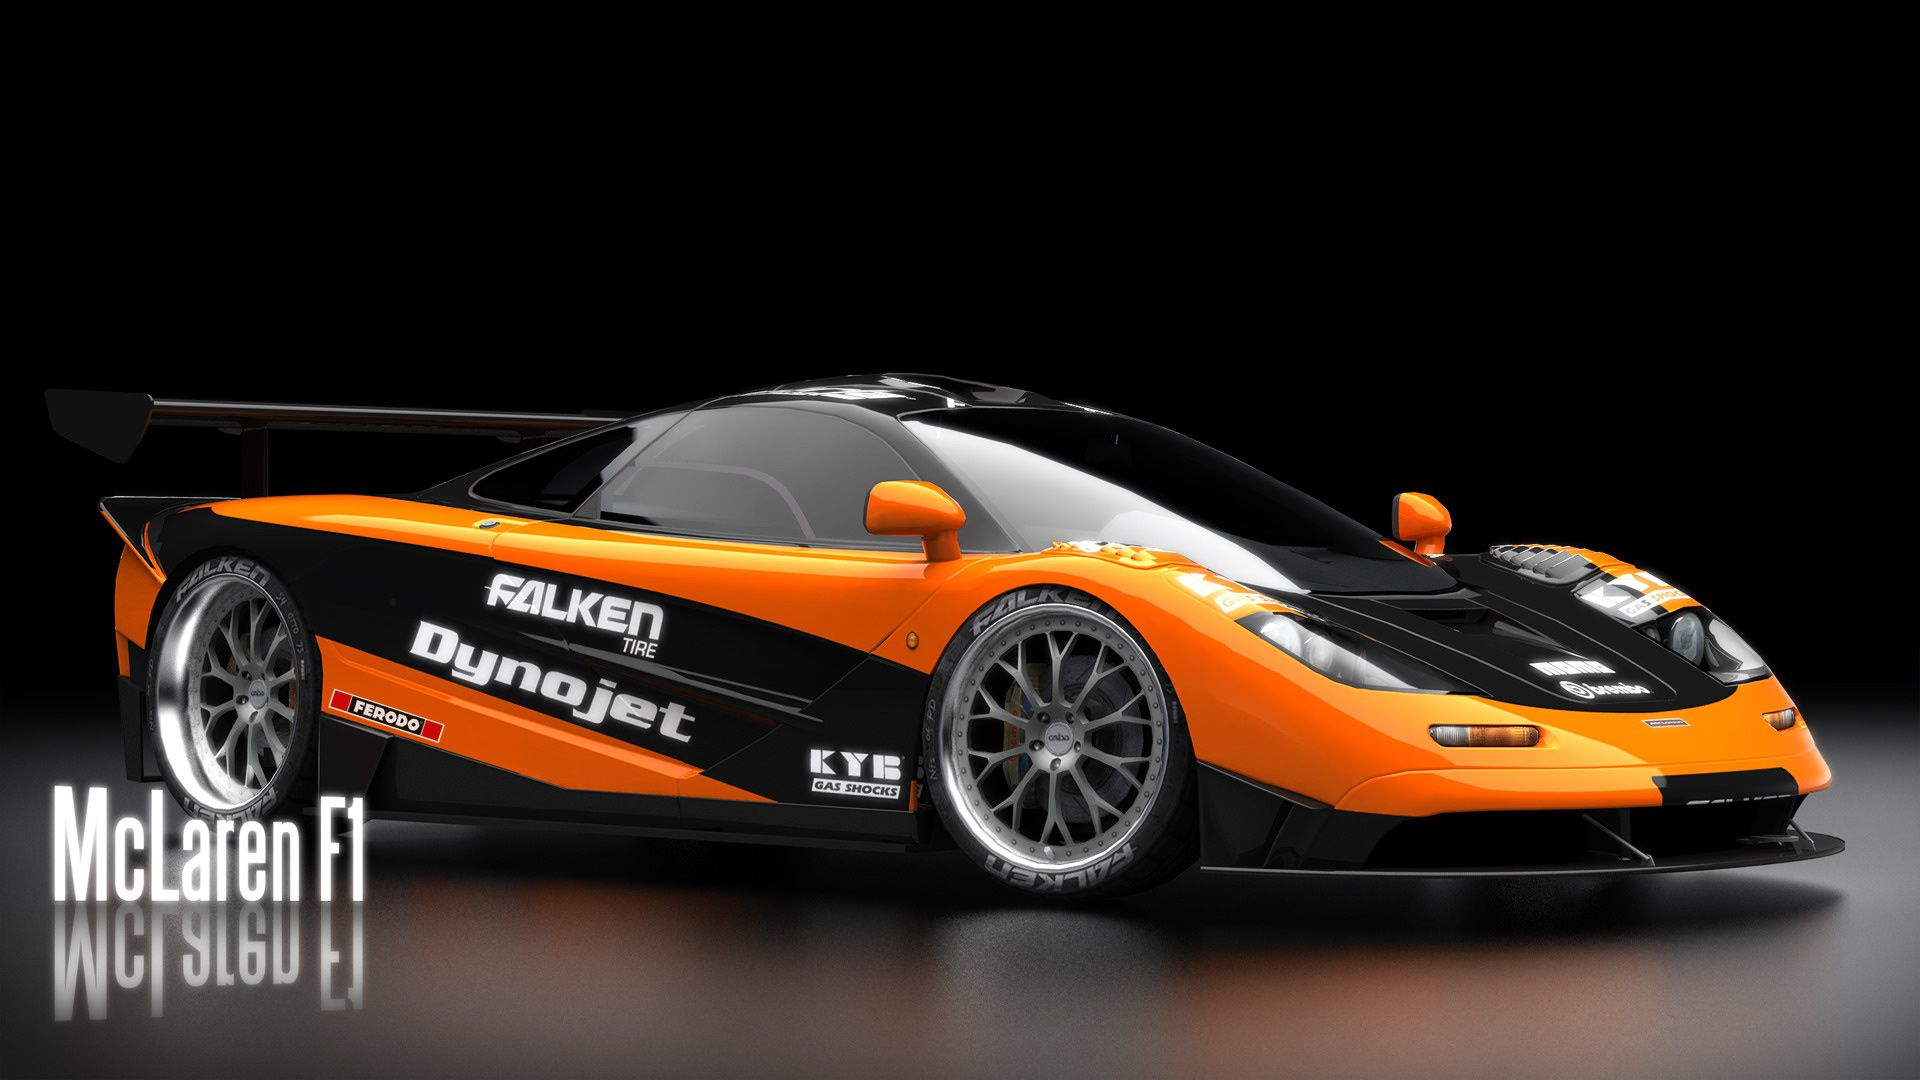 Mclaren F1 Third Most Expensive Car In The World 970 000